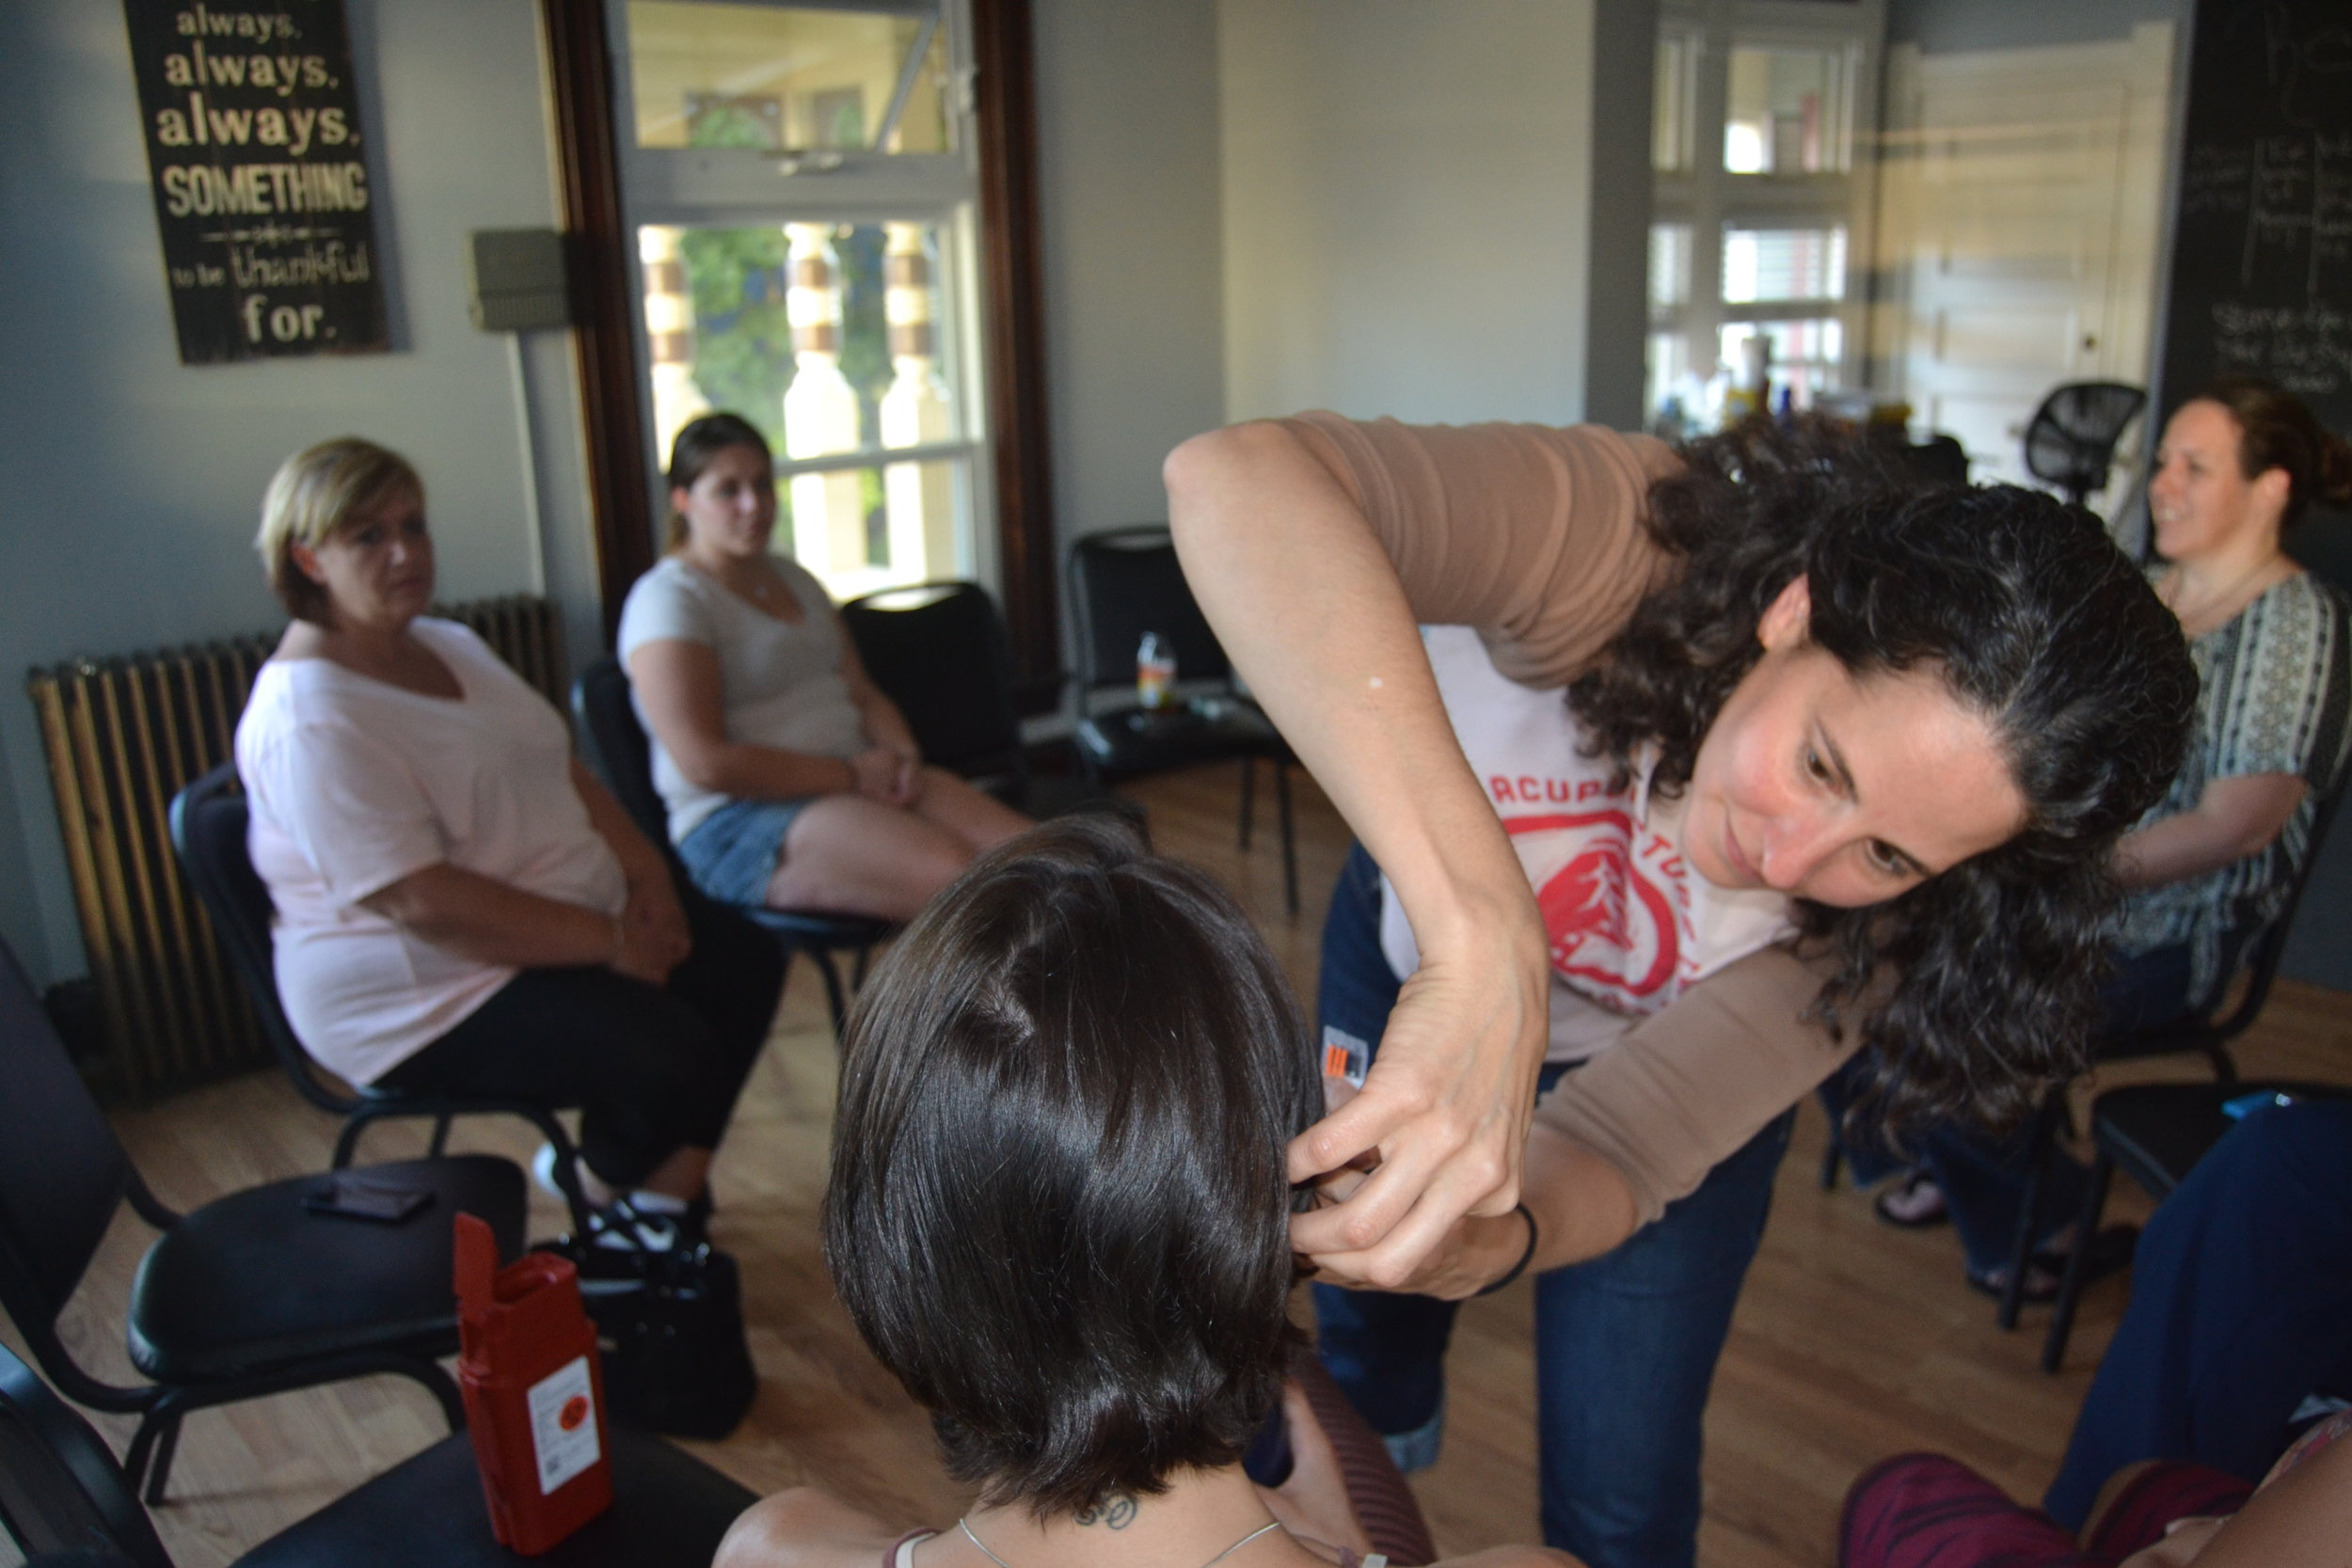 At the Revive Recovery House in Nashua, acupuncturist Elizabeth Ropp gives ear treatment designed for drug addiction to those battling a substance abuse problem.  CREDIT PAIGE SUTHERLAND/NHPR